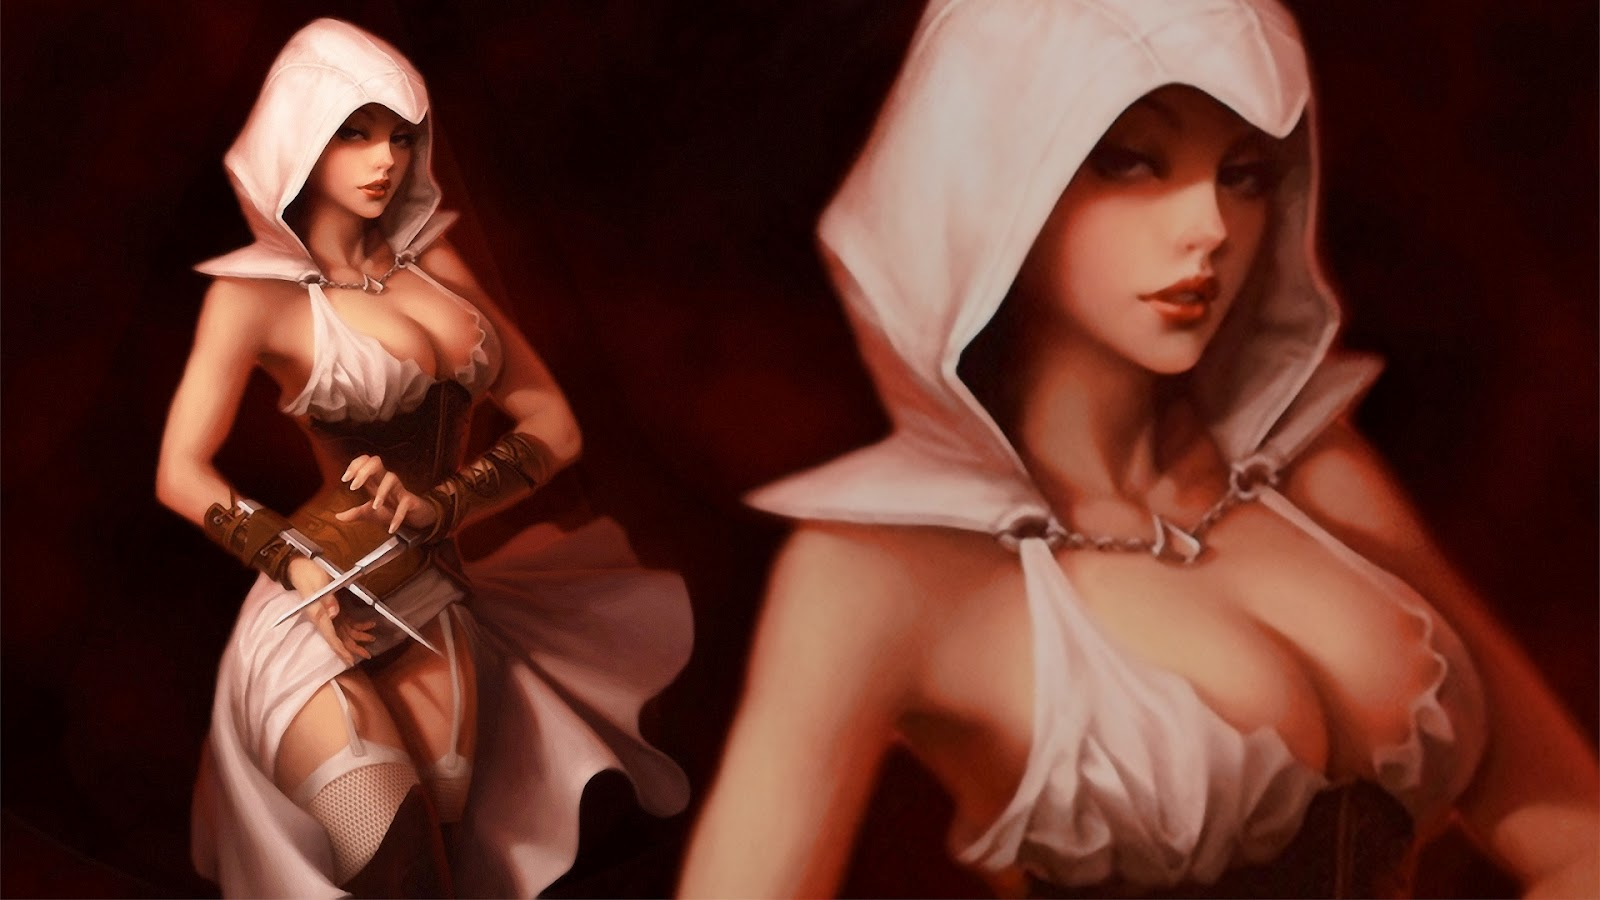 Assassin creed brotherhood lesbian porn imagefap hentia photos